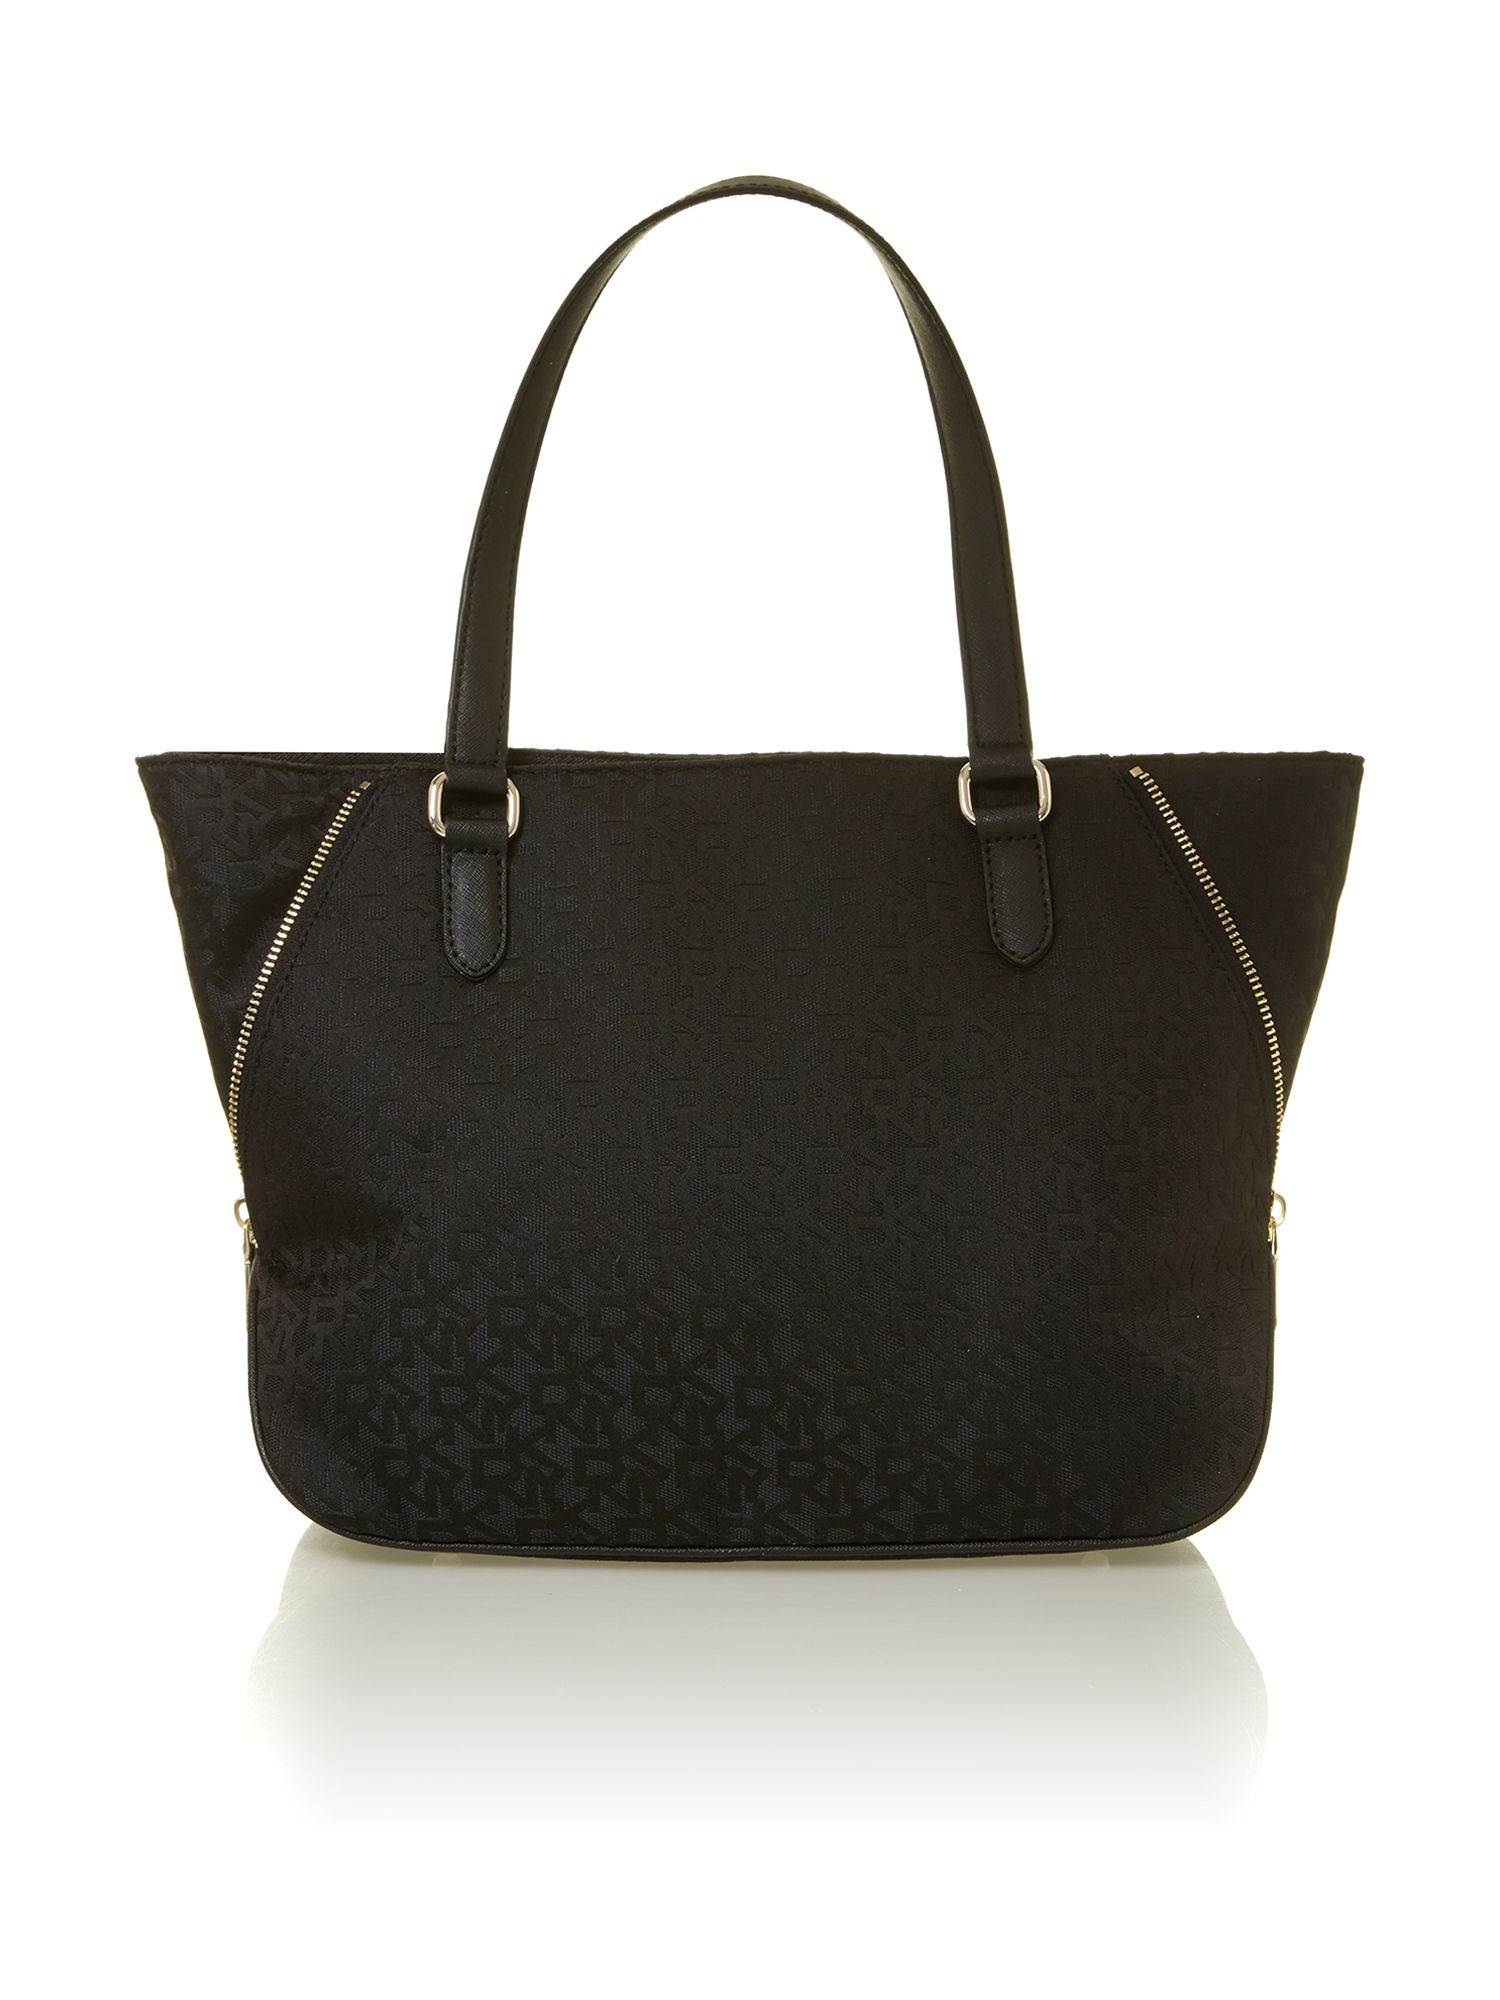 Saffiano black tote bag